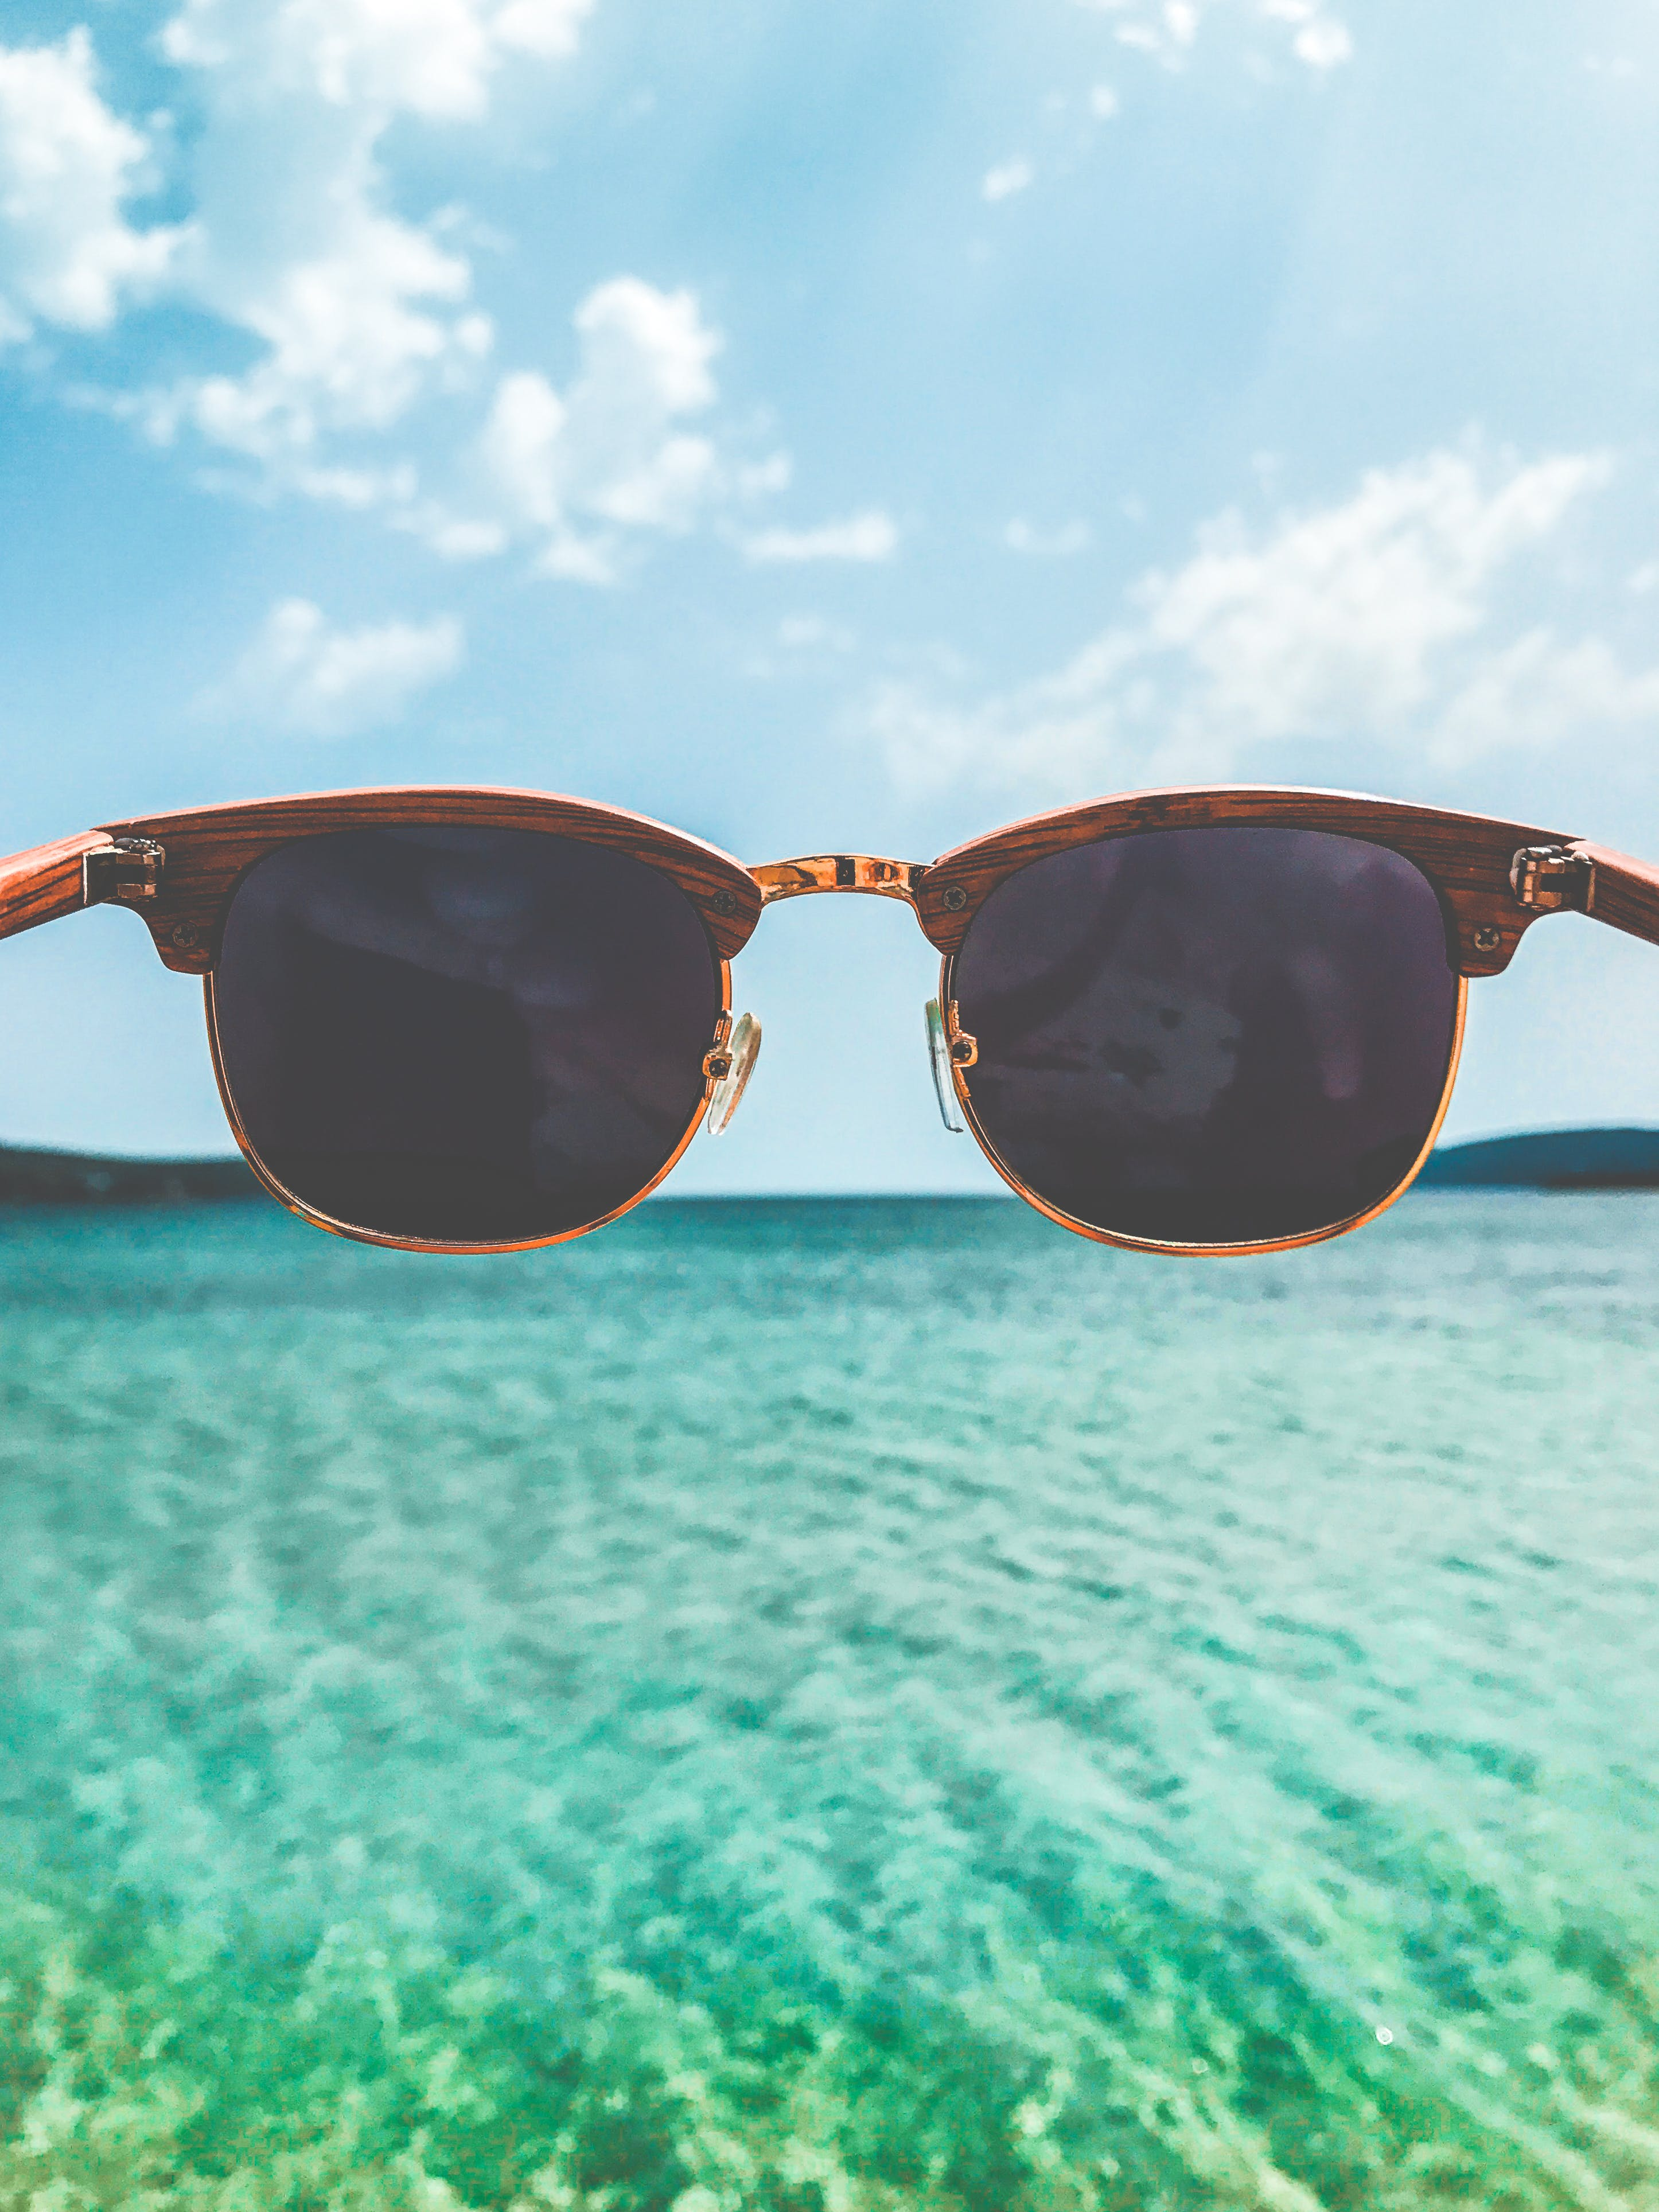 Close Up Photography of Brown Clubmaster Style Sunglasses